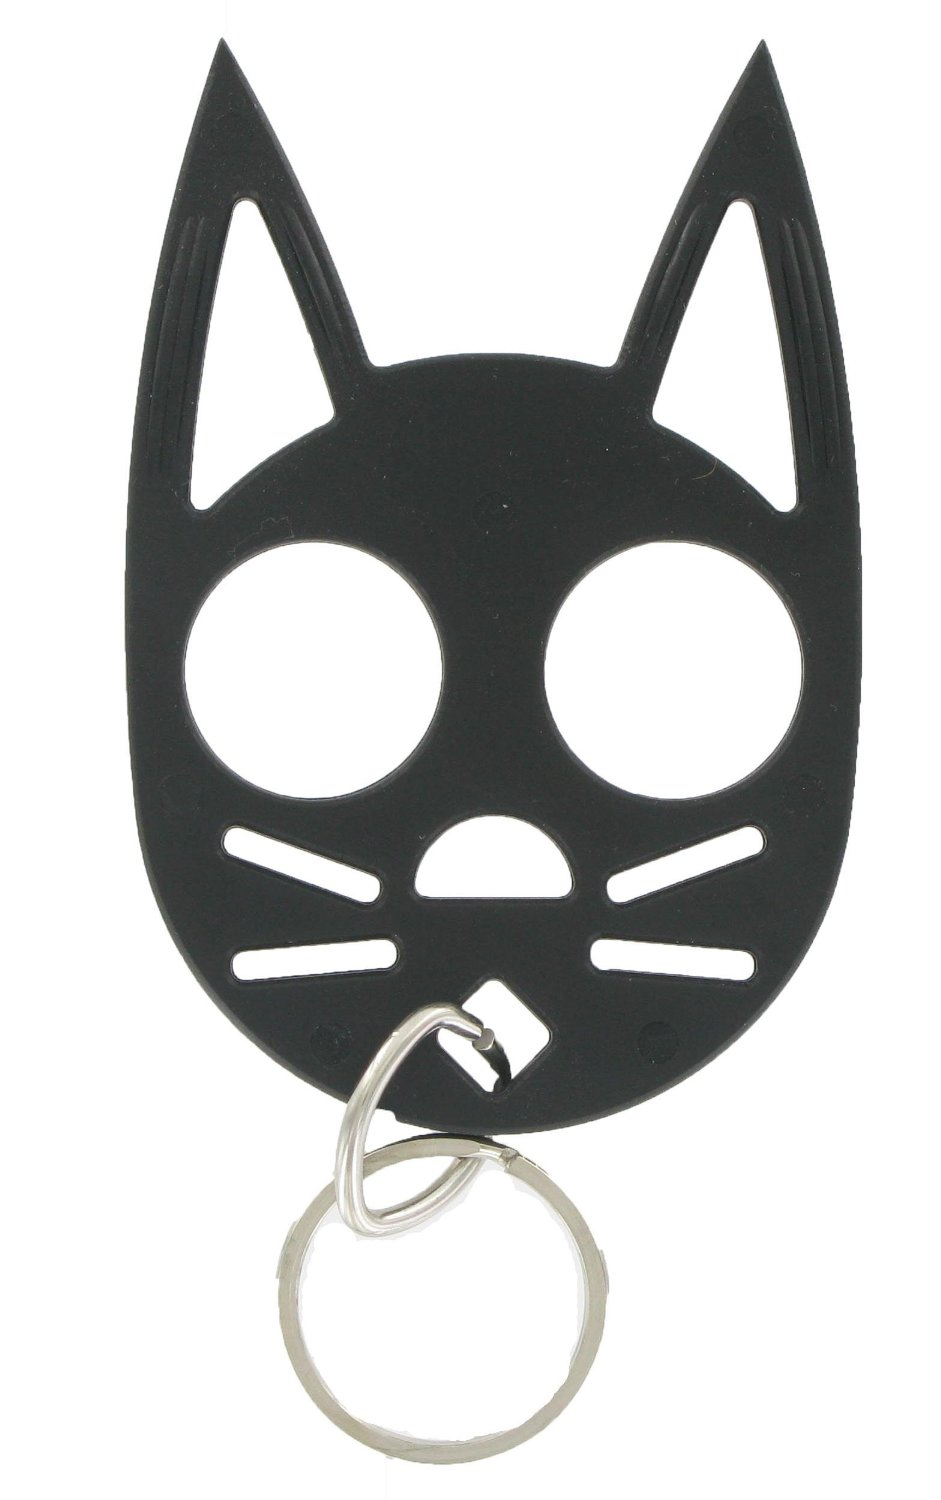 The Cat Security & Self Defense Key Chains